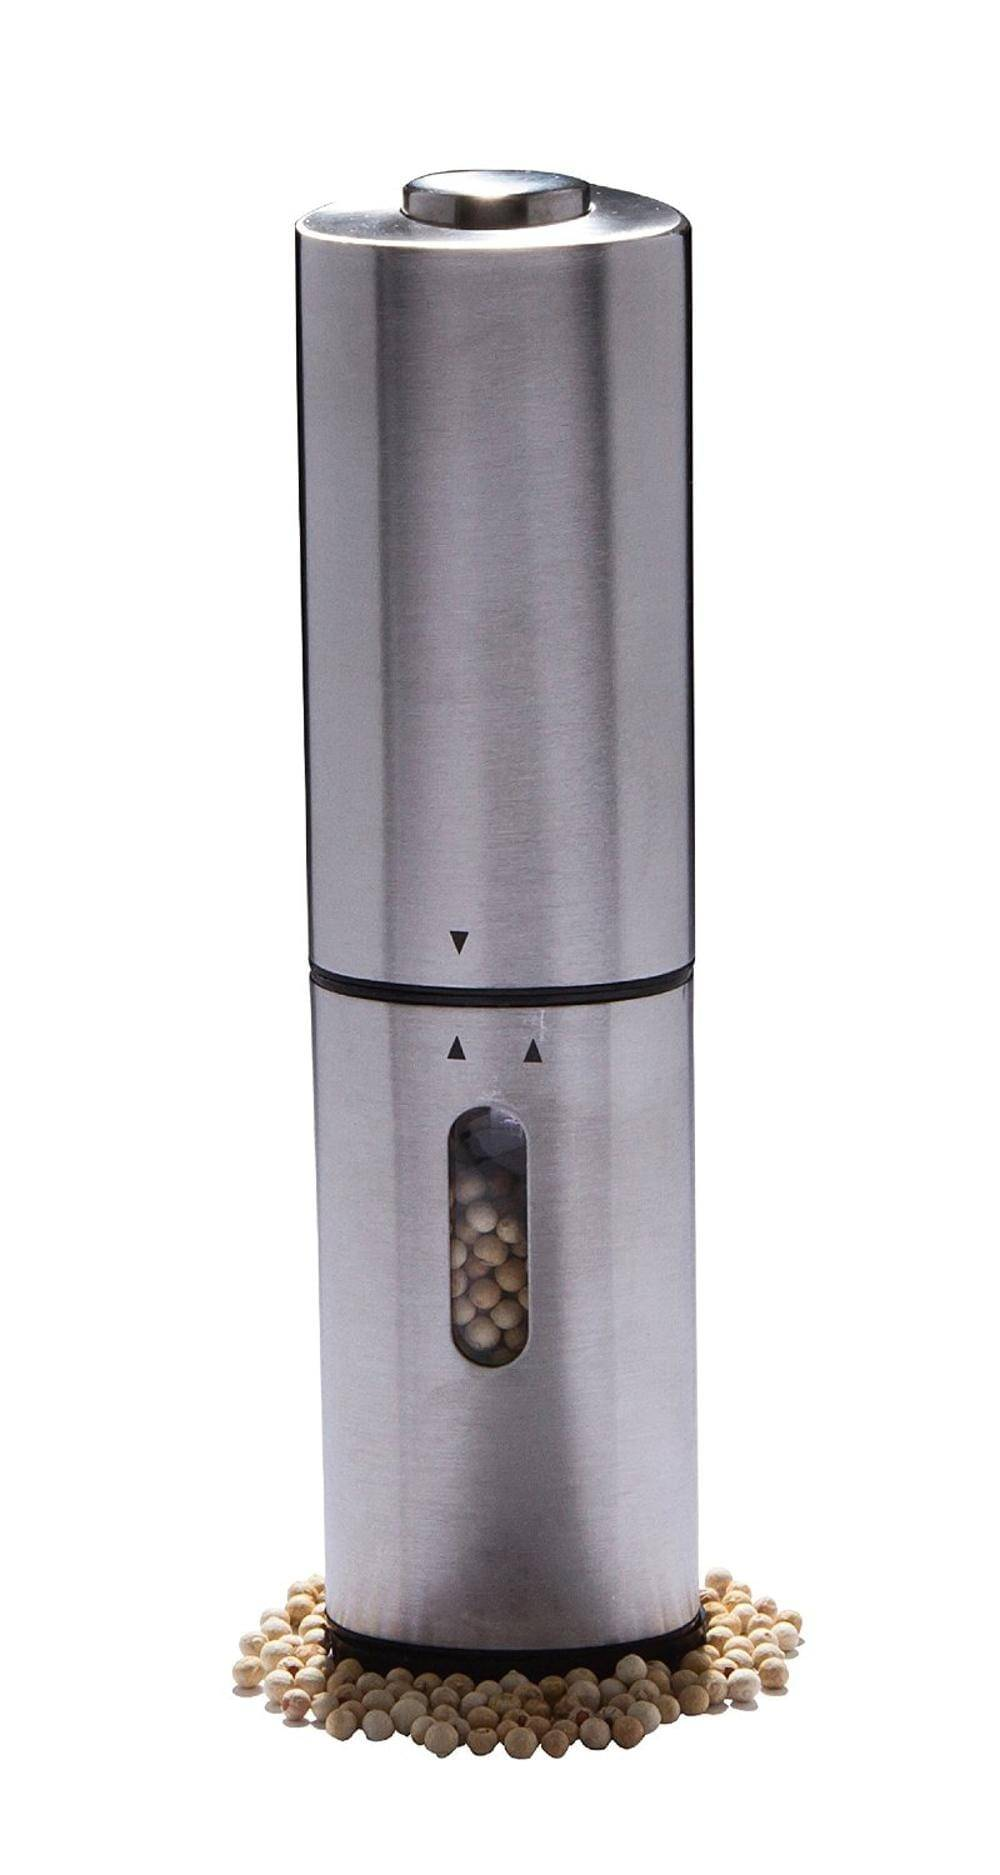 Stainless steel Salt and Pepper Mill with Battery